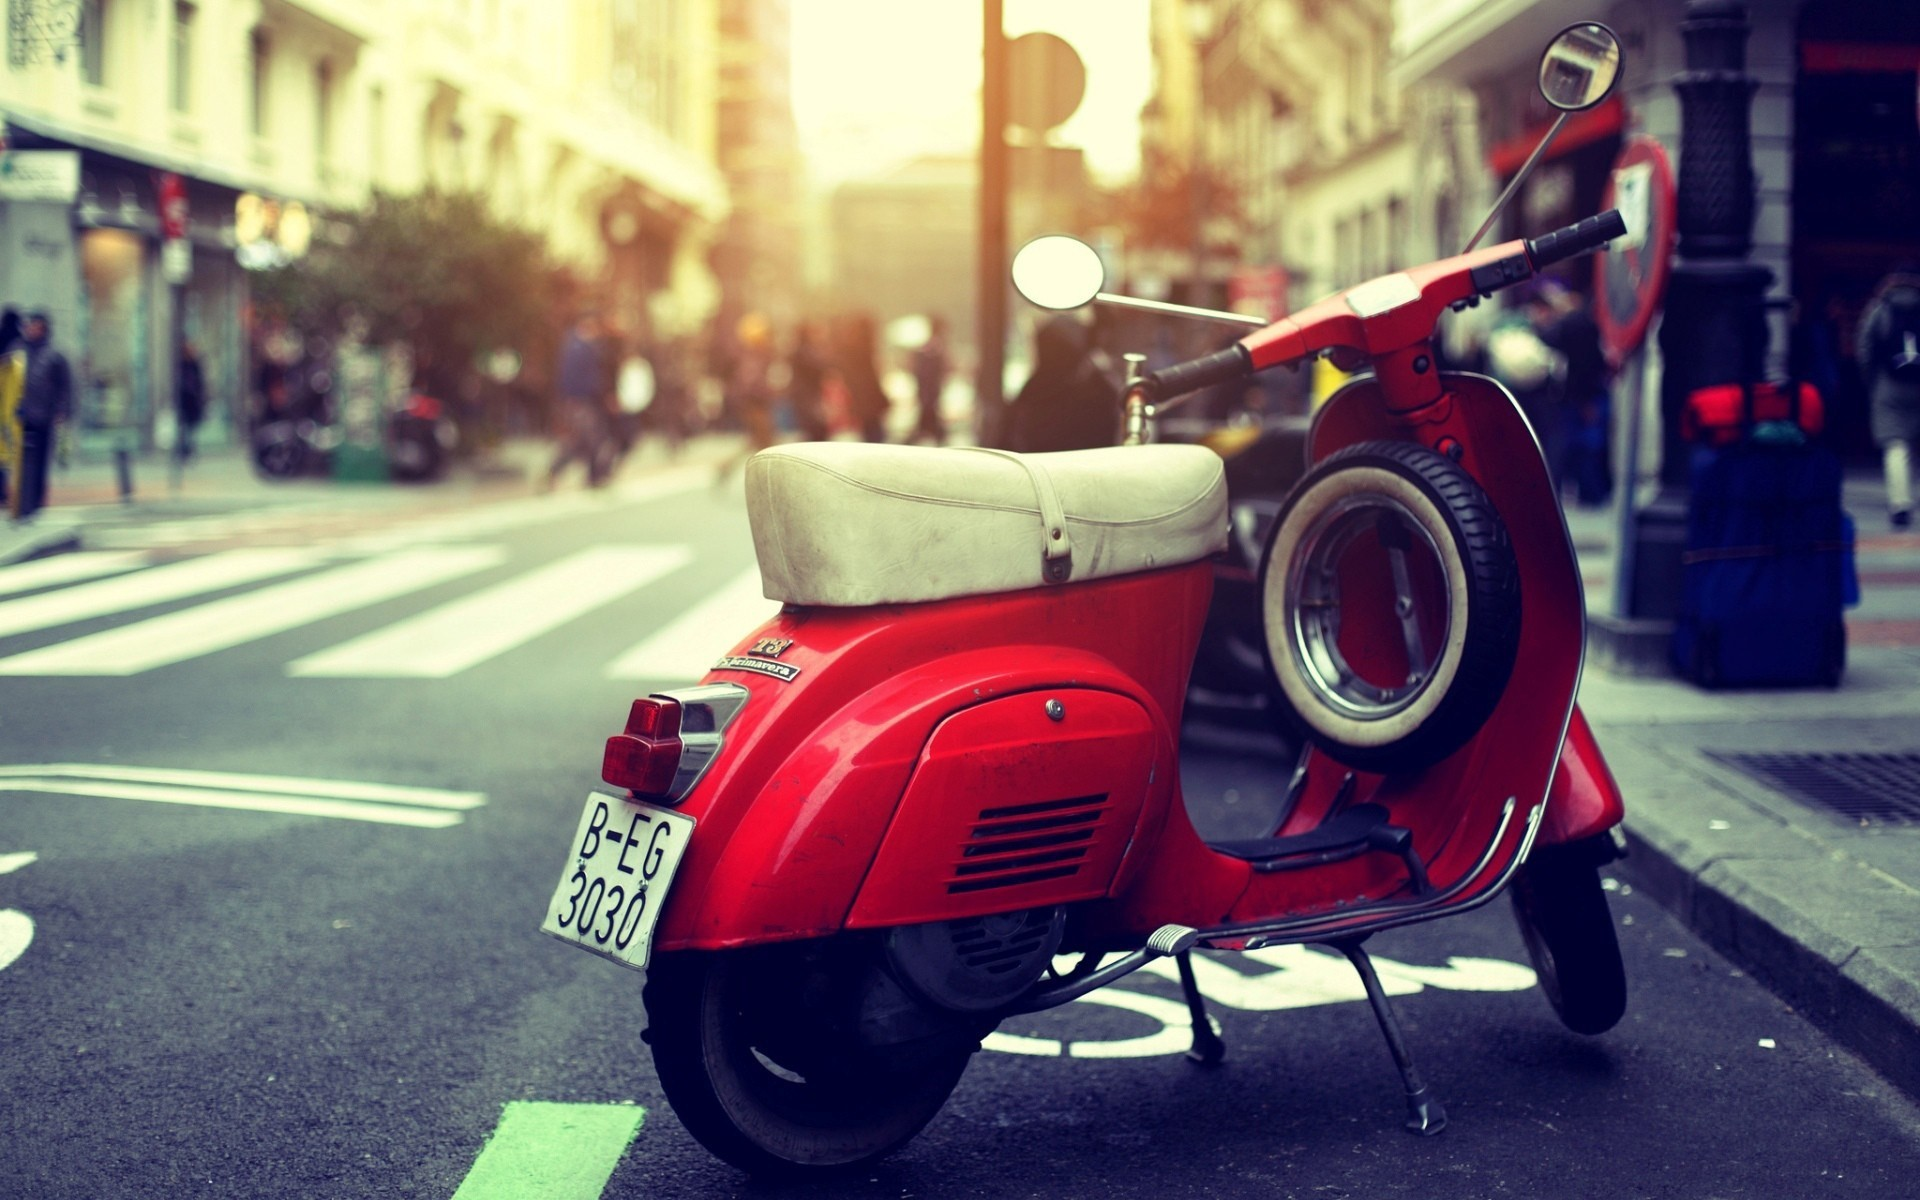 vespa scooter, red, street, photo